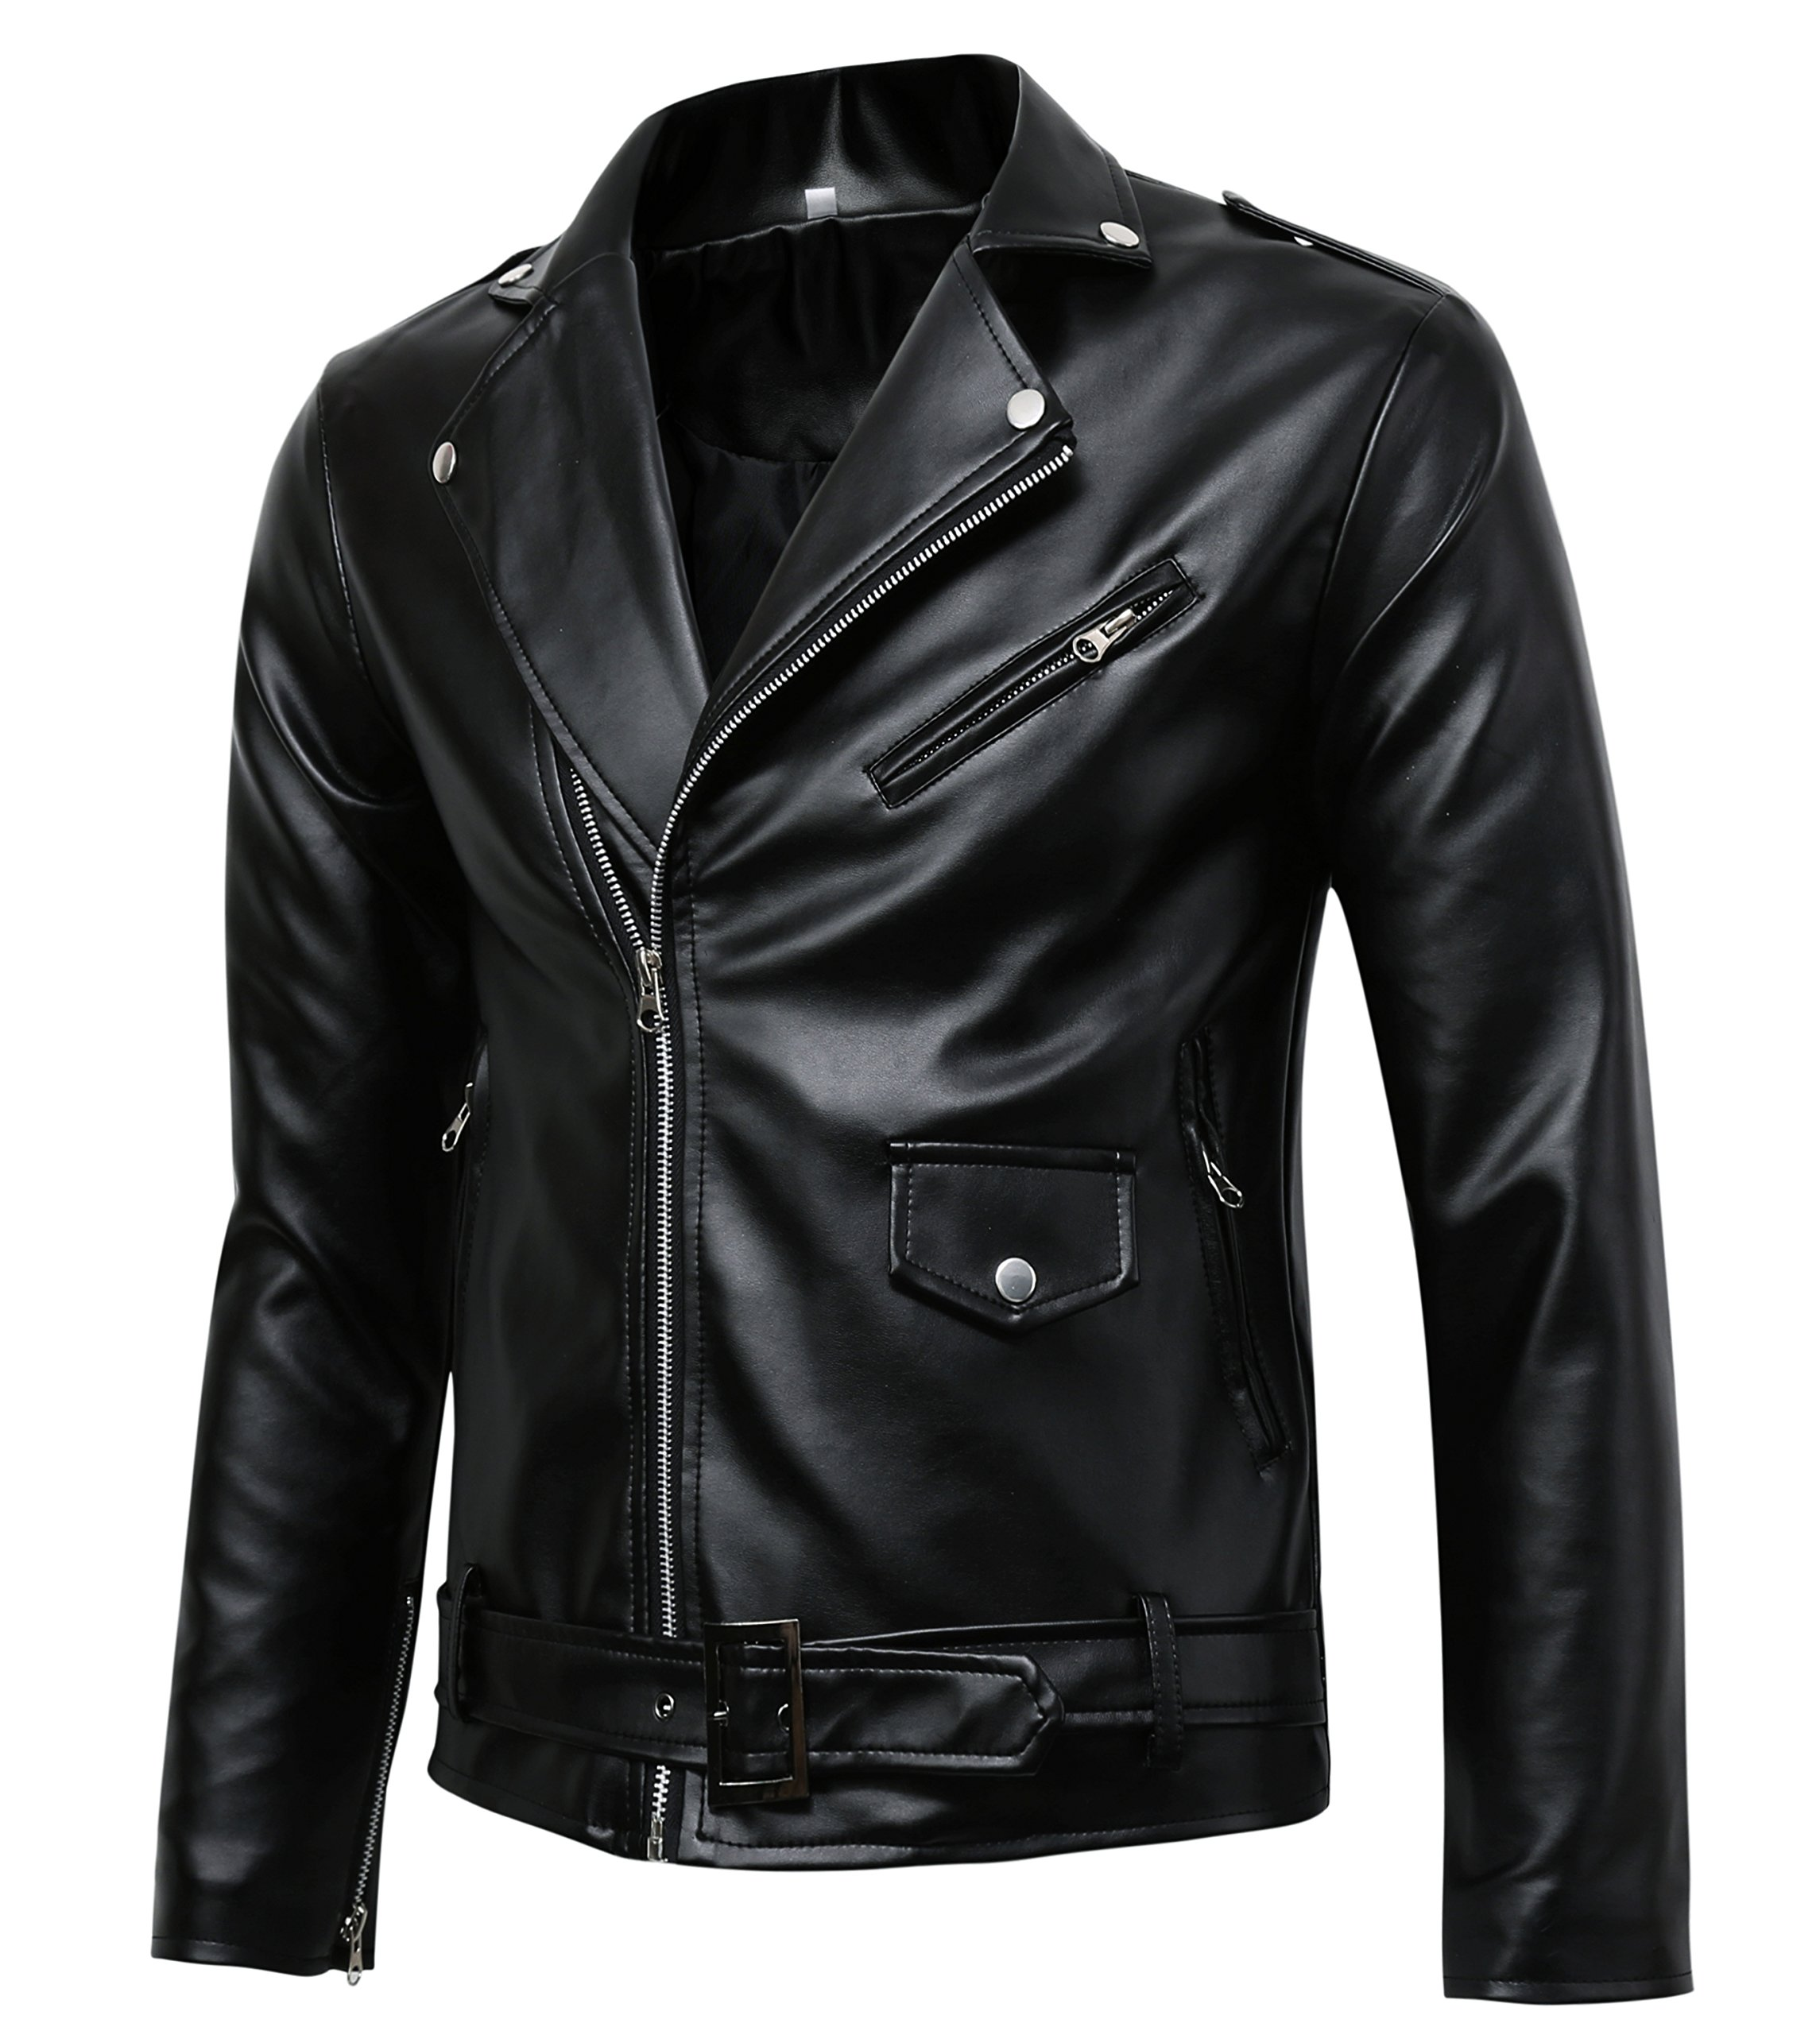 Men's Classic Police Style Faux Leather Motorcycle Jacket, Black, X-Large